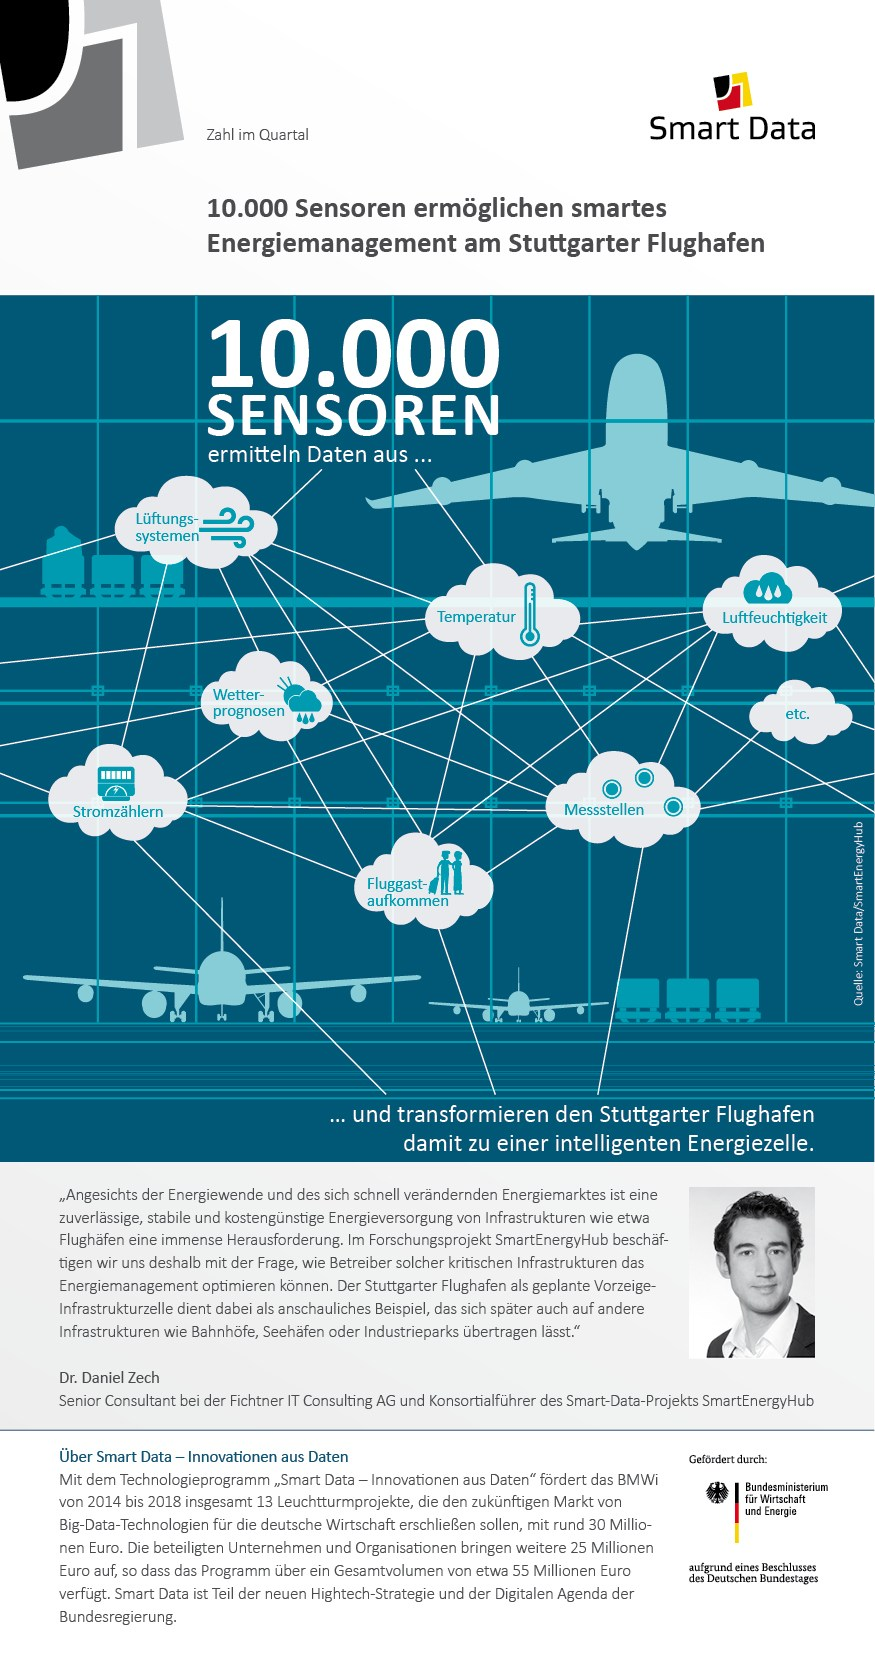 grafik-smart-data-100000-sensoren-flughafen